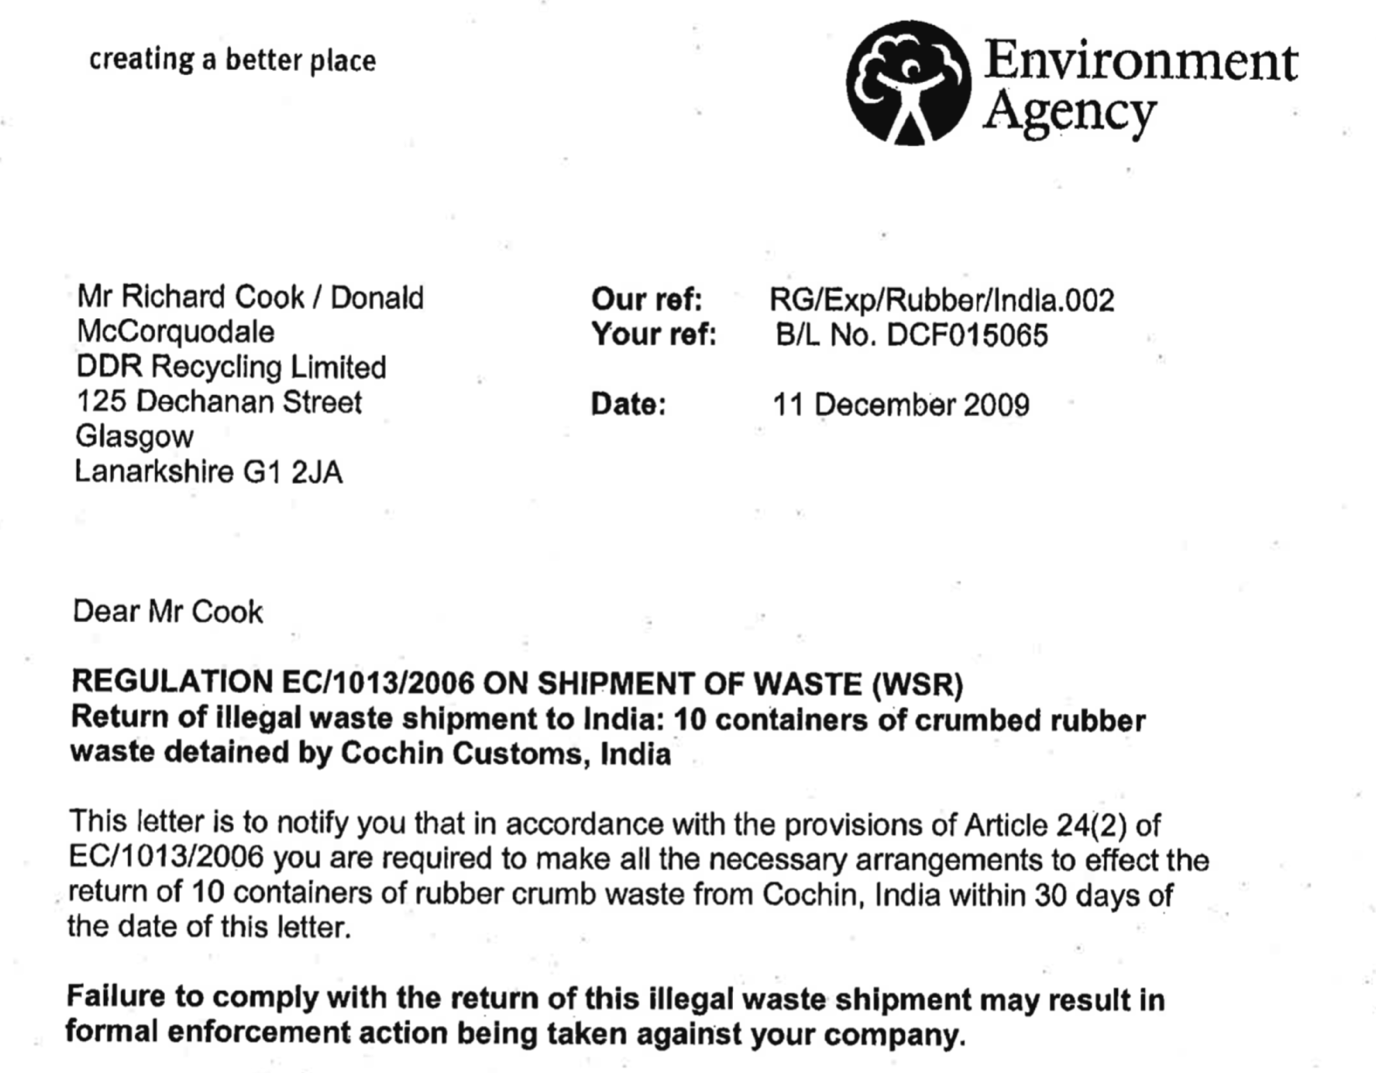 Environment Agency Letter to Richard Cook